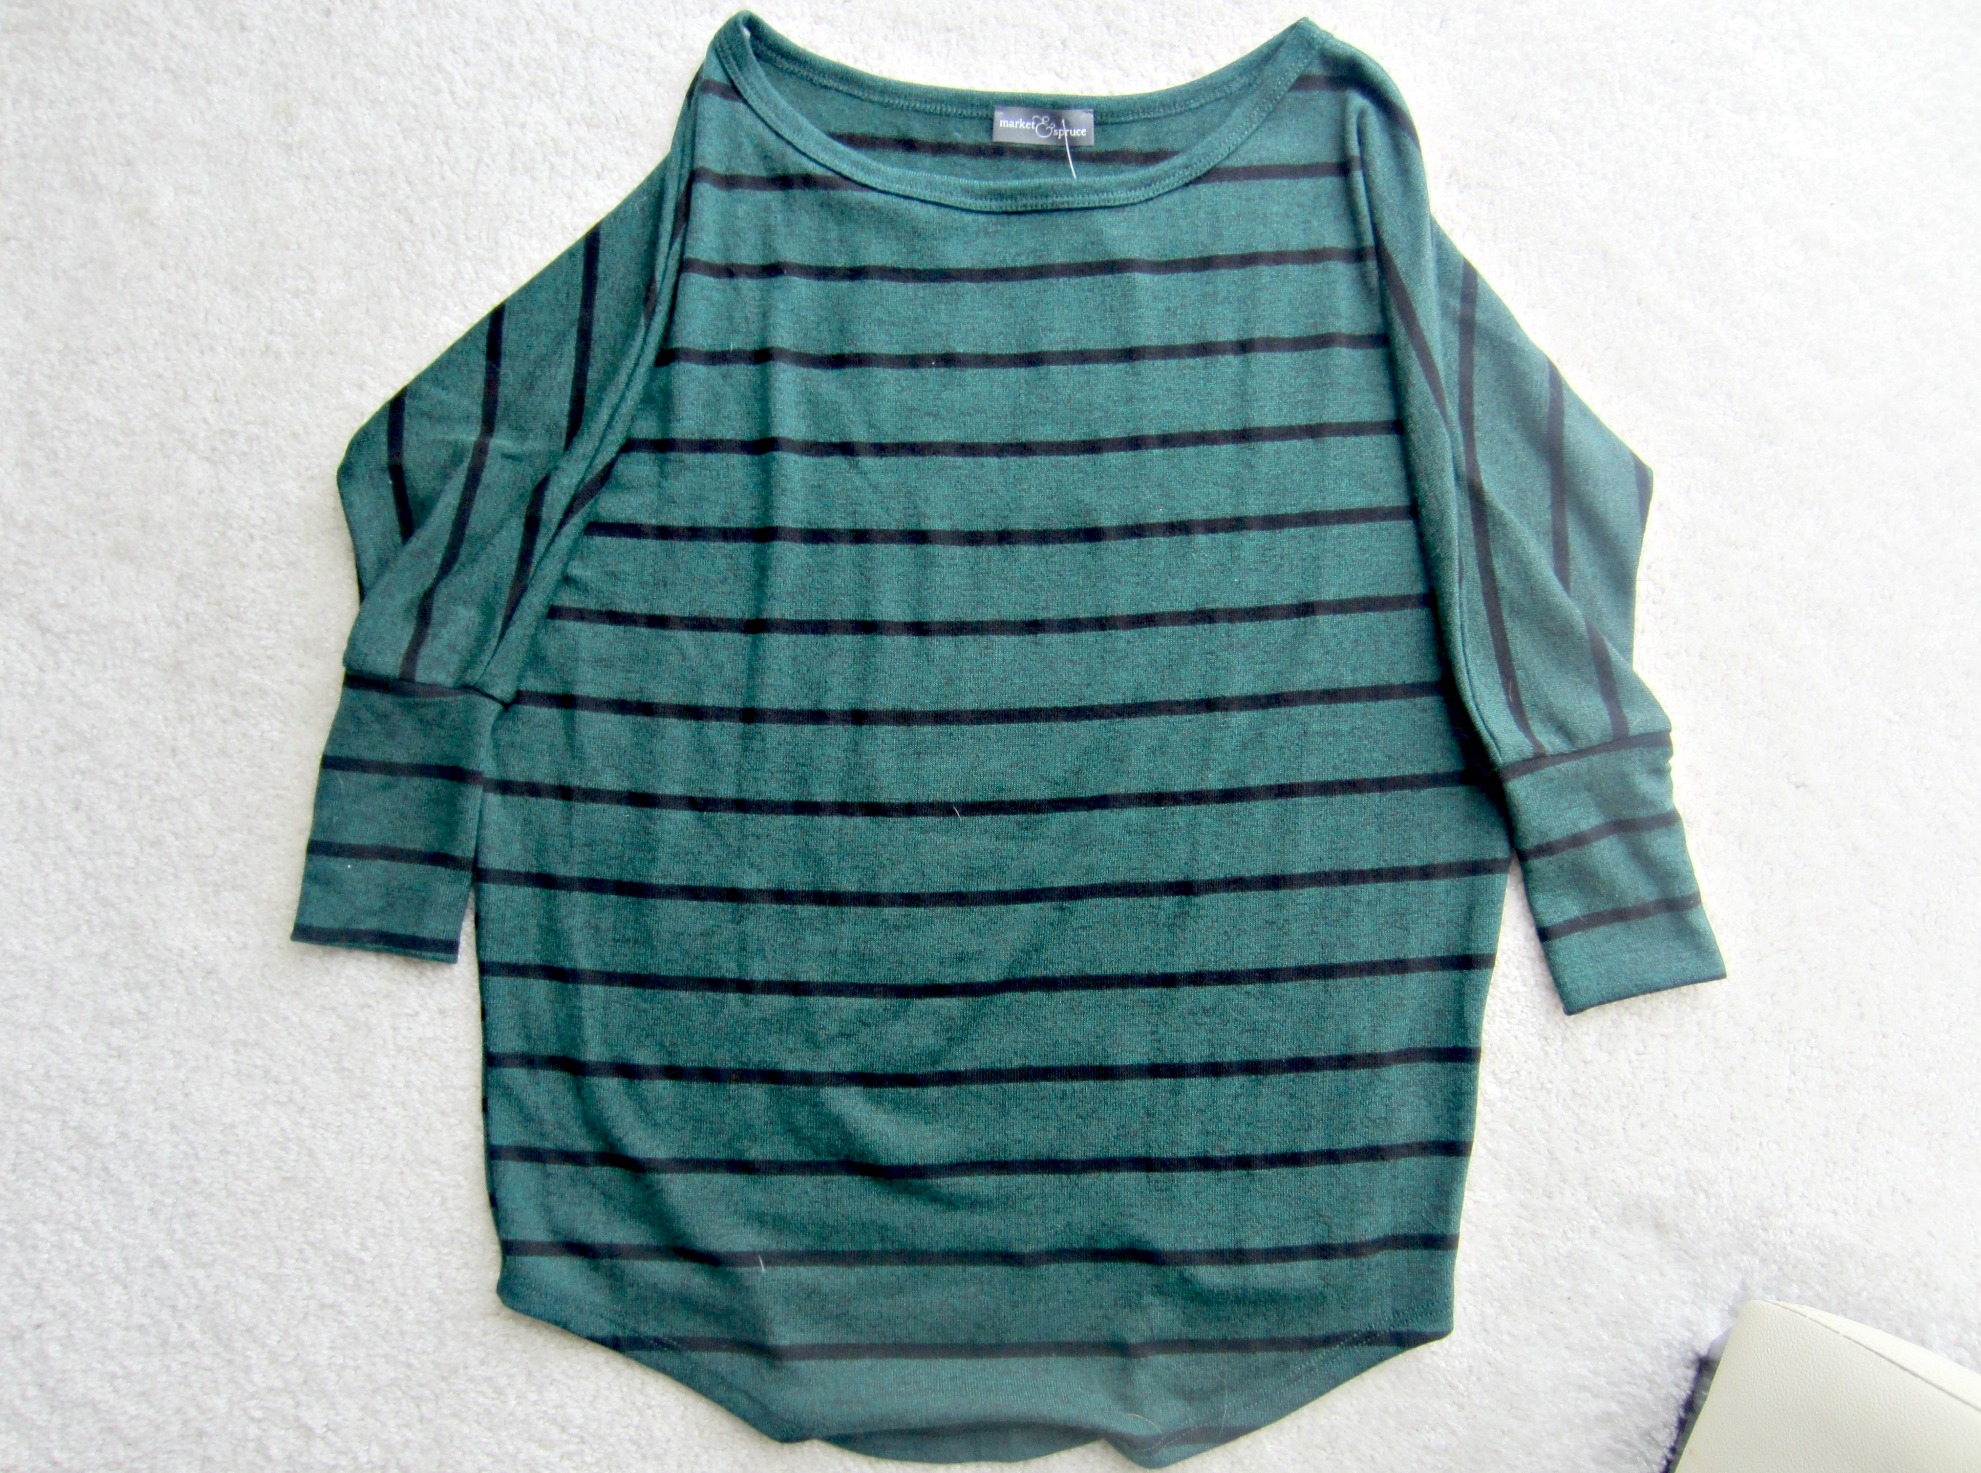 stitch fix market & spruce shirt